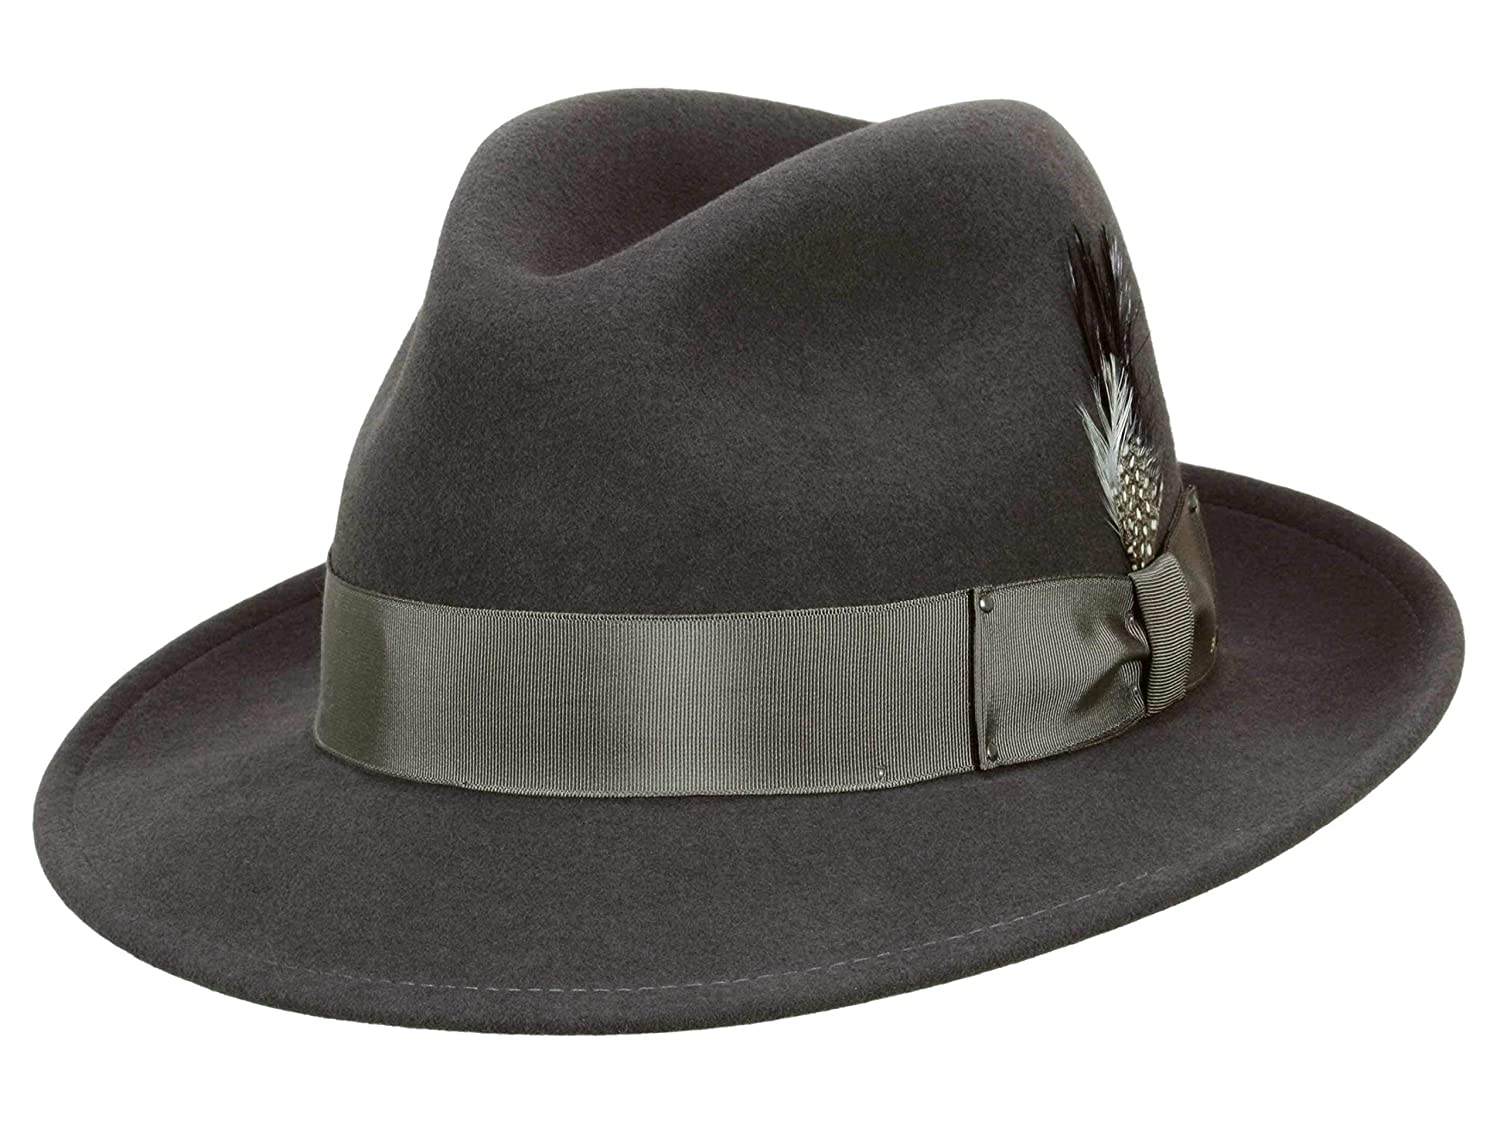 0a801ed54ef Bailey Men s Fedora Hat Blixen - grey  Amazon.co.uk  Clothing